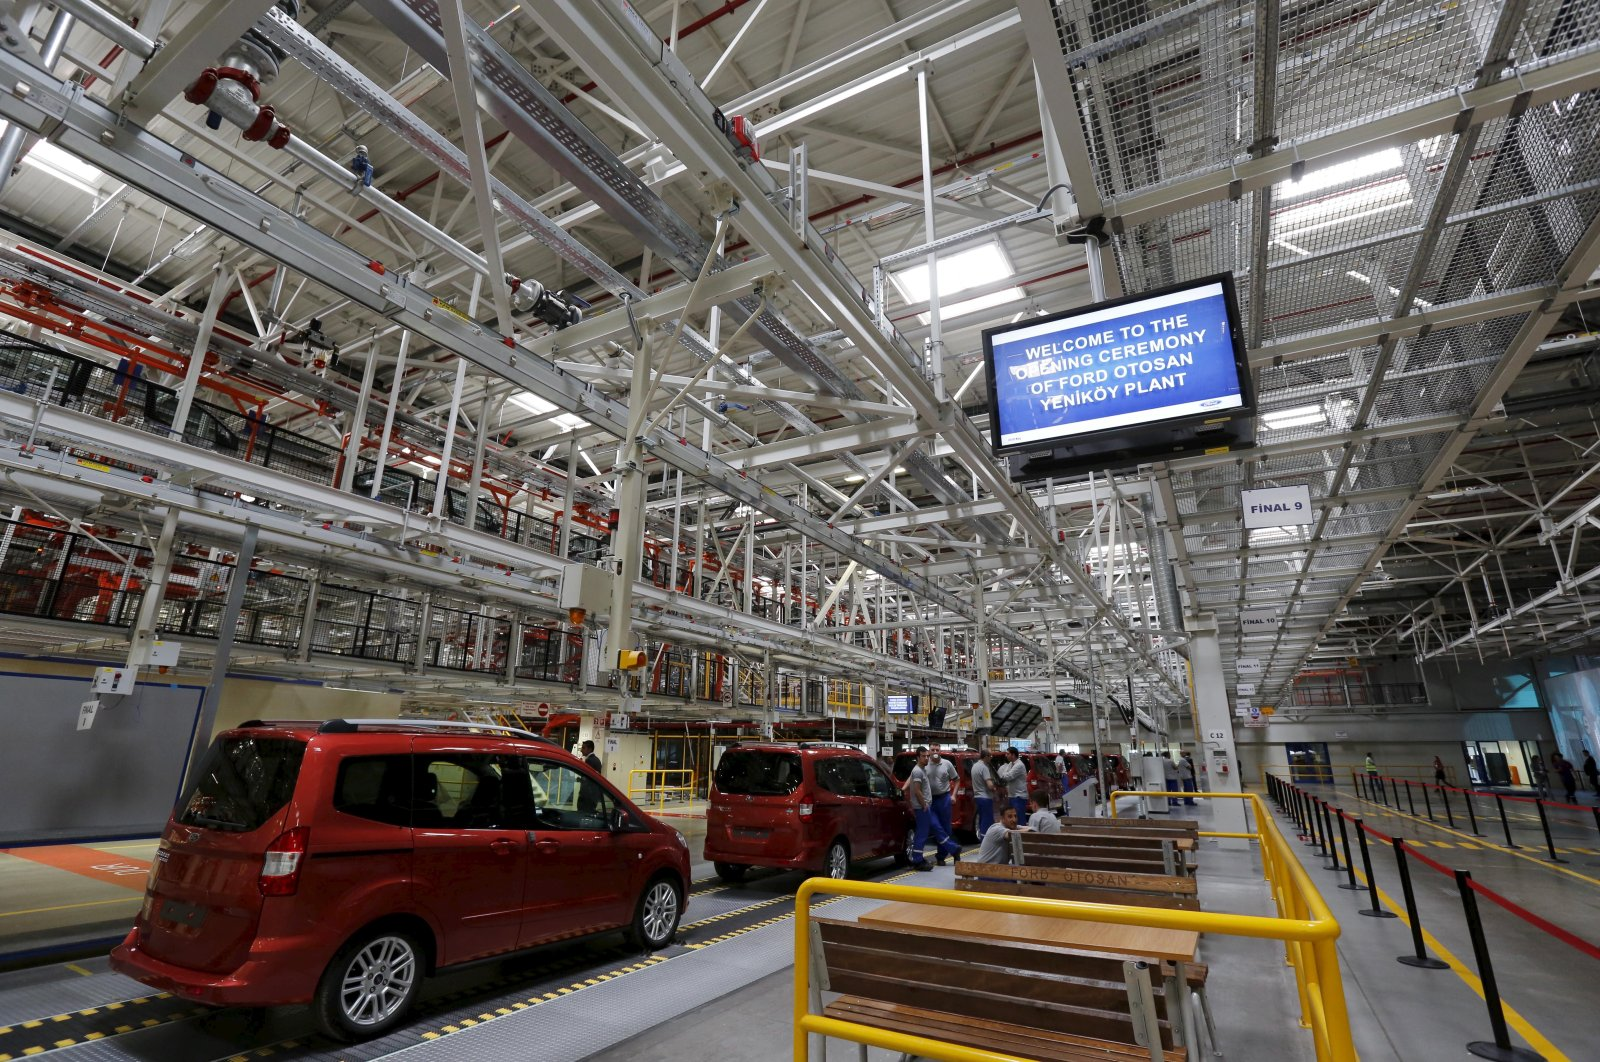 Ford Tourneo Courier light commercial vehicles are pictured at the Ford Otosan car plant in Kocaeli, Turkey, May 22, 2014. (Reuters Photo)